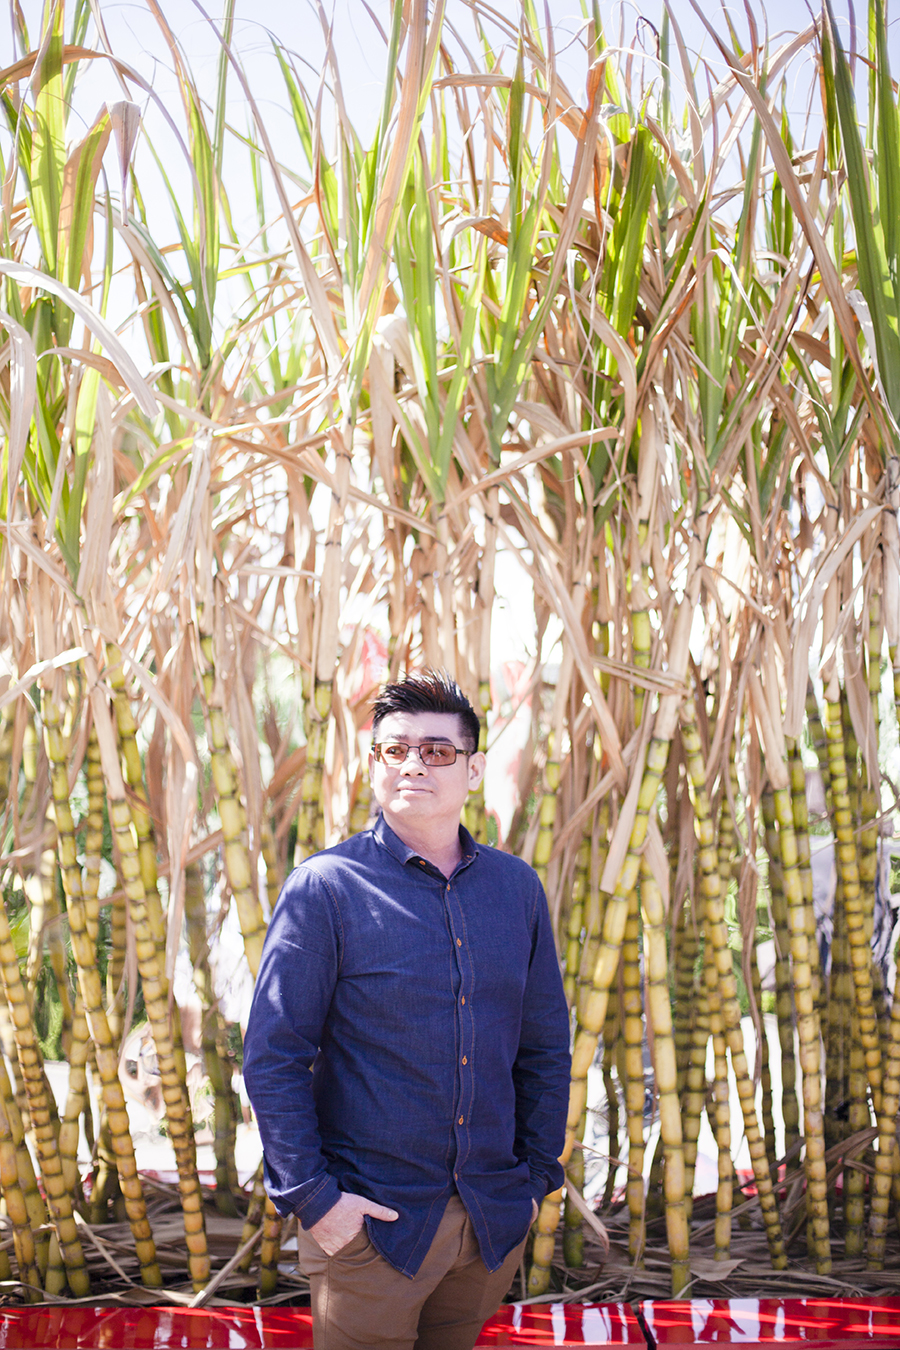 Ken in front of sugarcane maze at the Singapore Garden Festival.